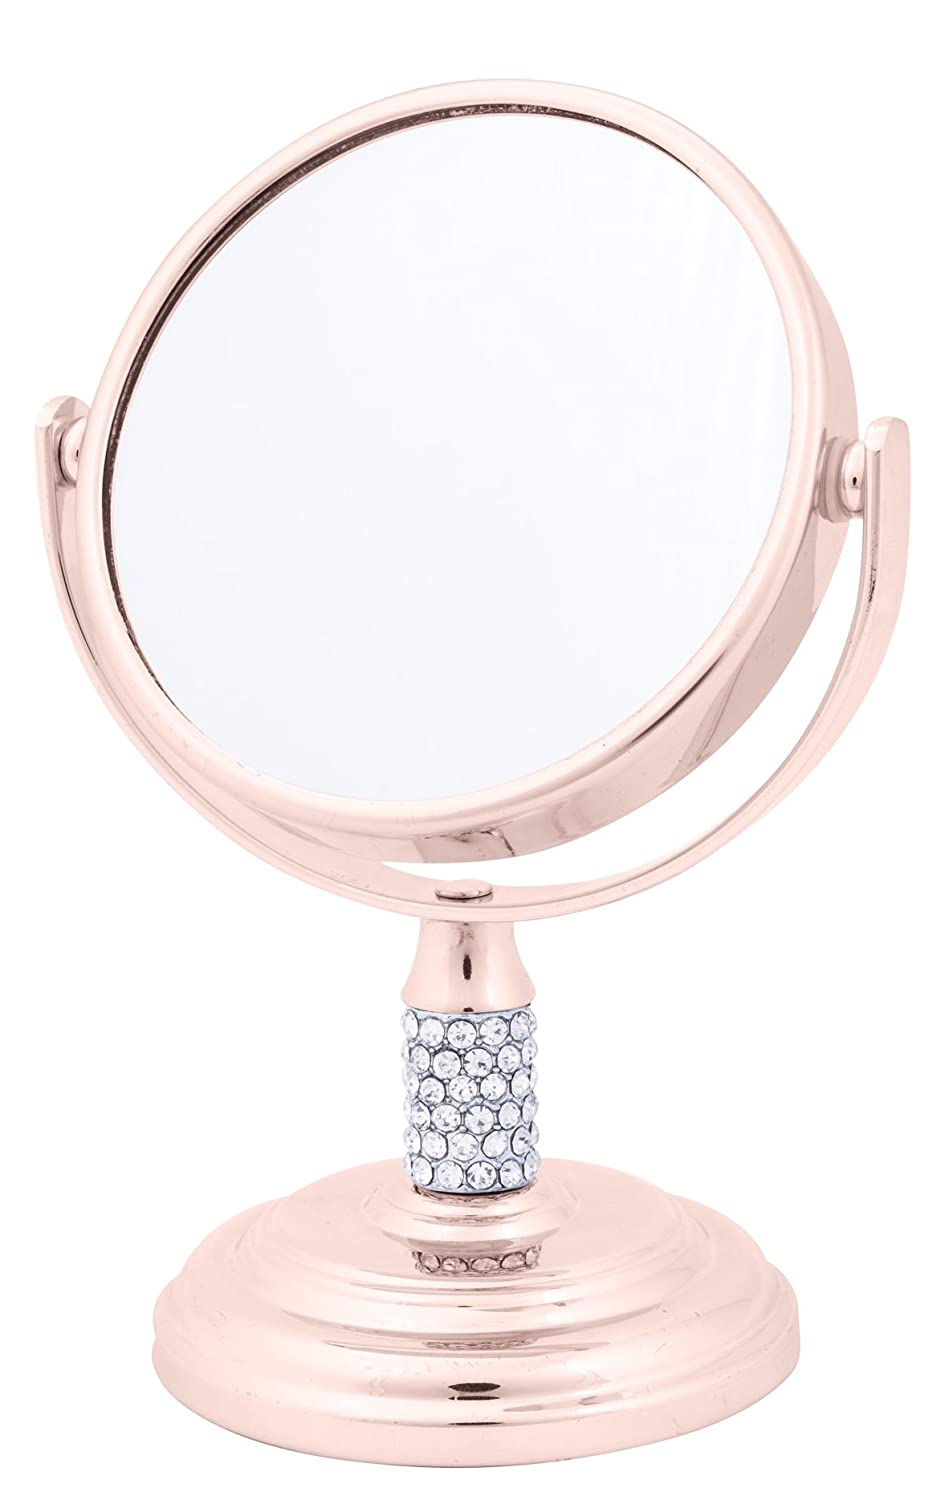 Danielle Enterprises 4X Magnification Dual Sided Crystal Studded Vanity Mirror, Mini, Rose Gold D639RG